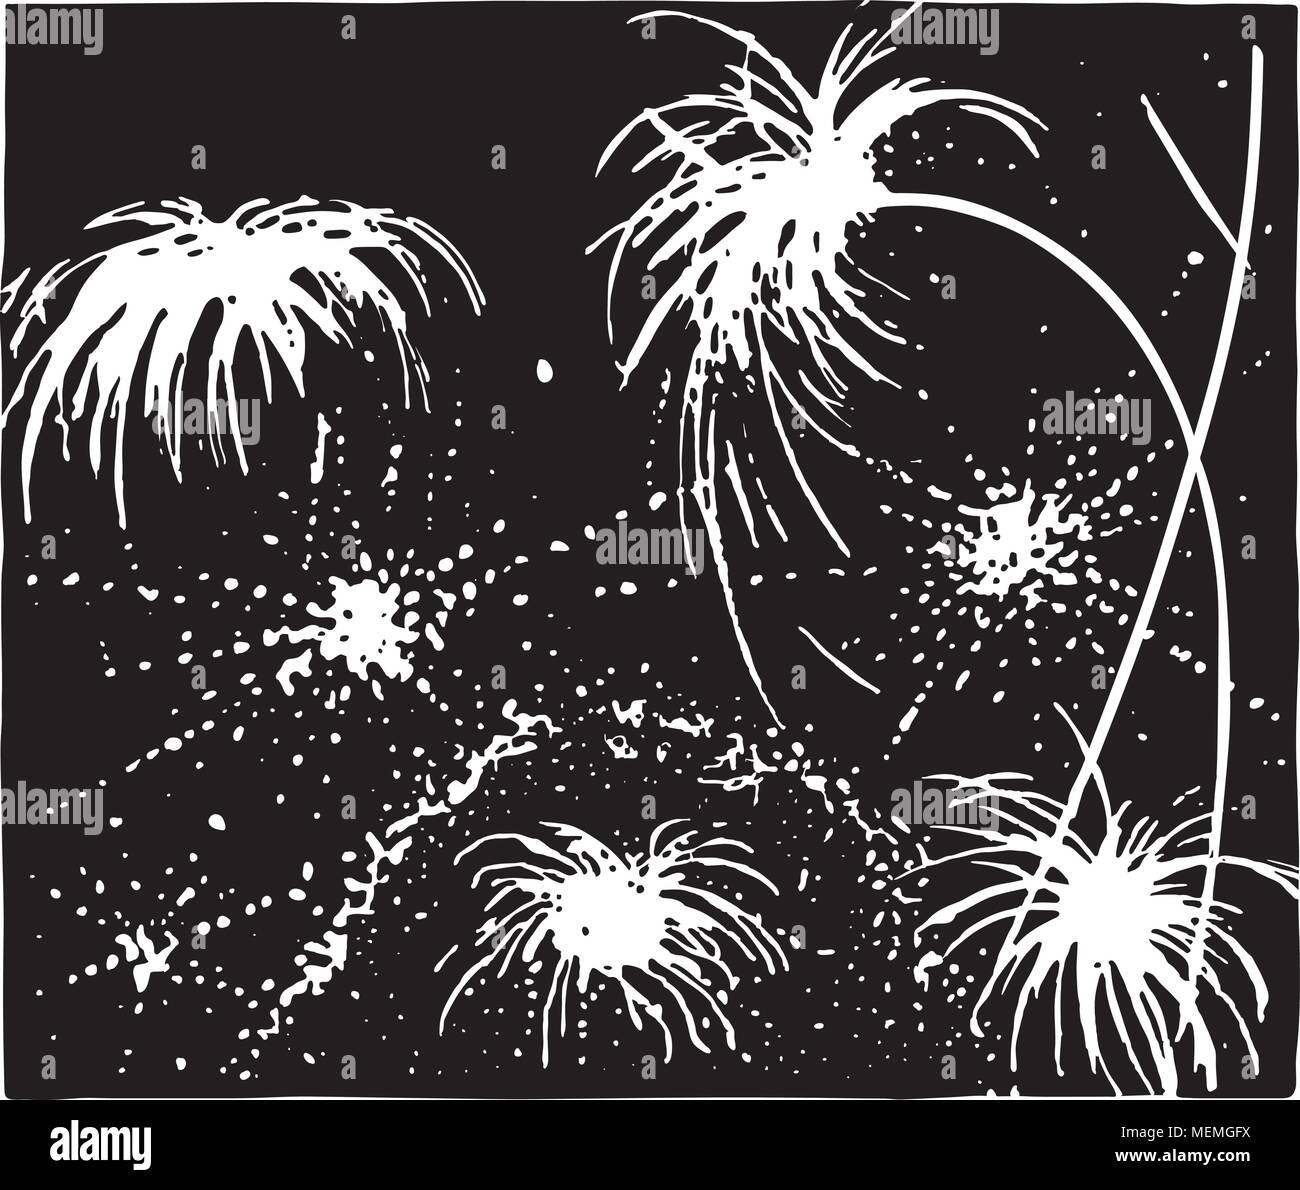 hight resolution of fireworks exploding royalty free stock images exploding fireworks animation exploding stock vector images